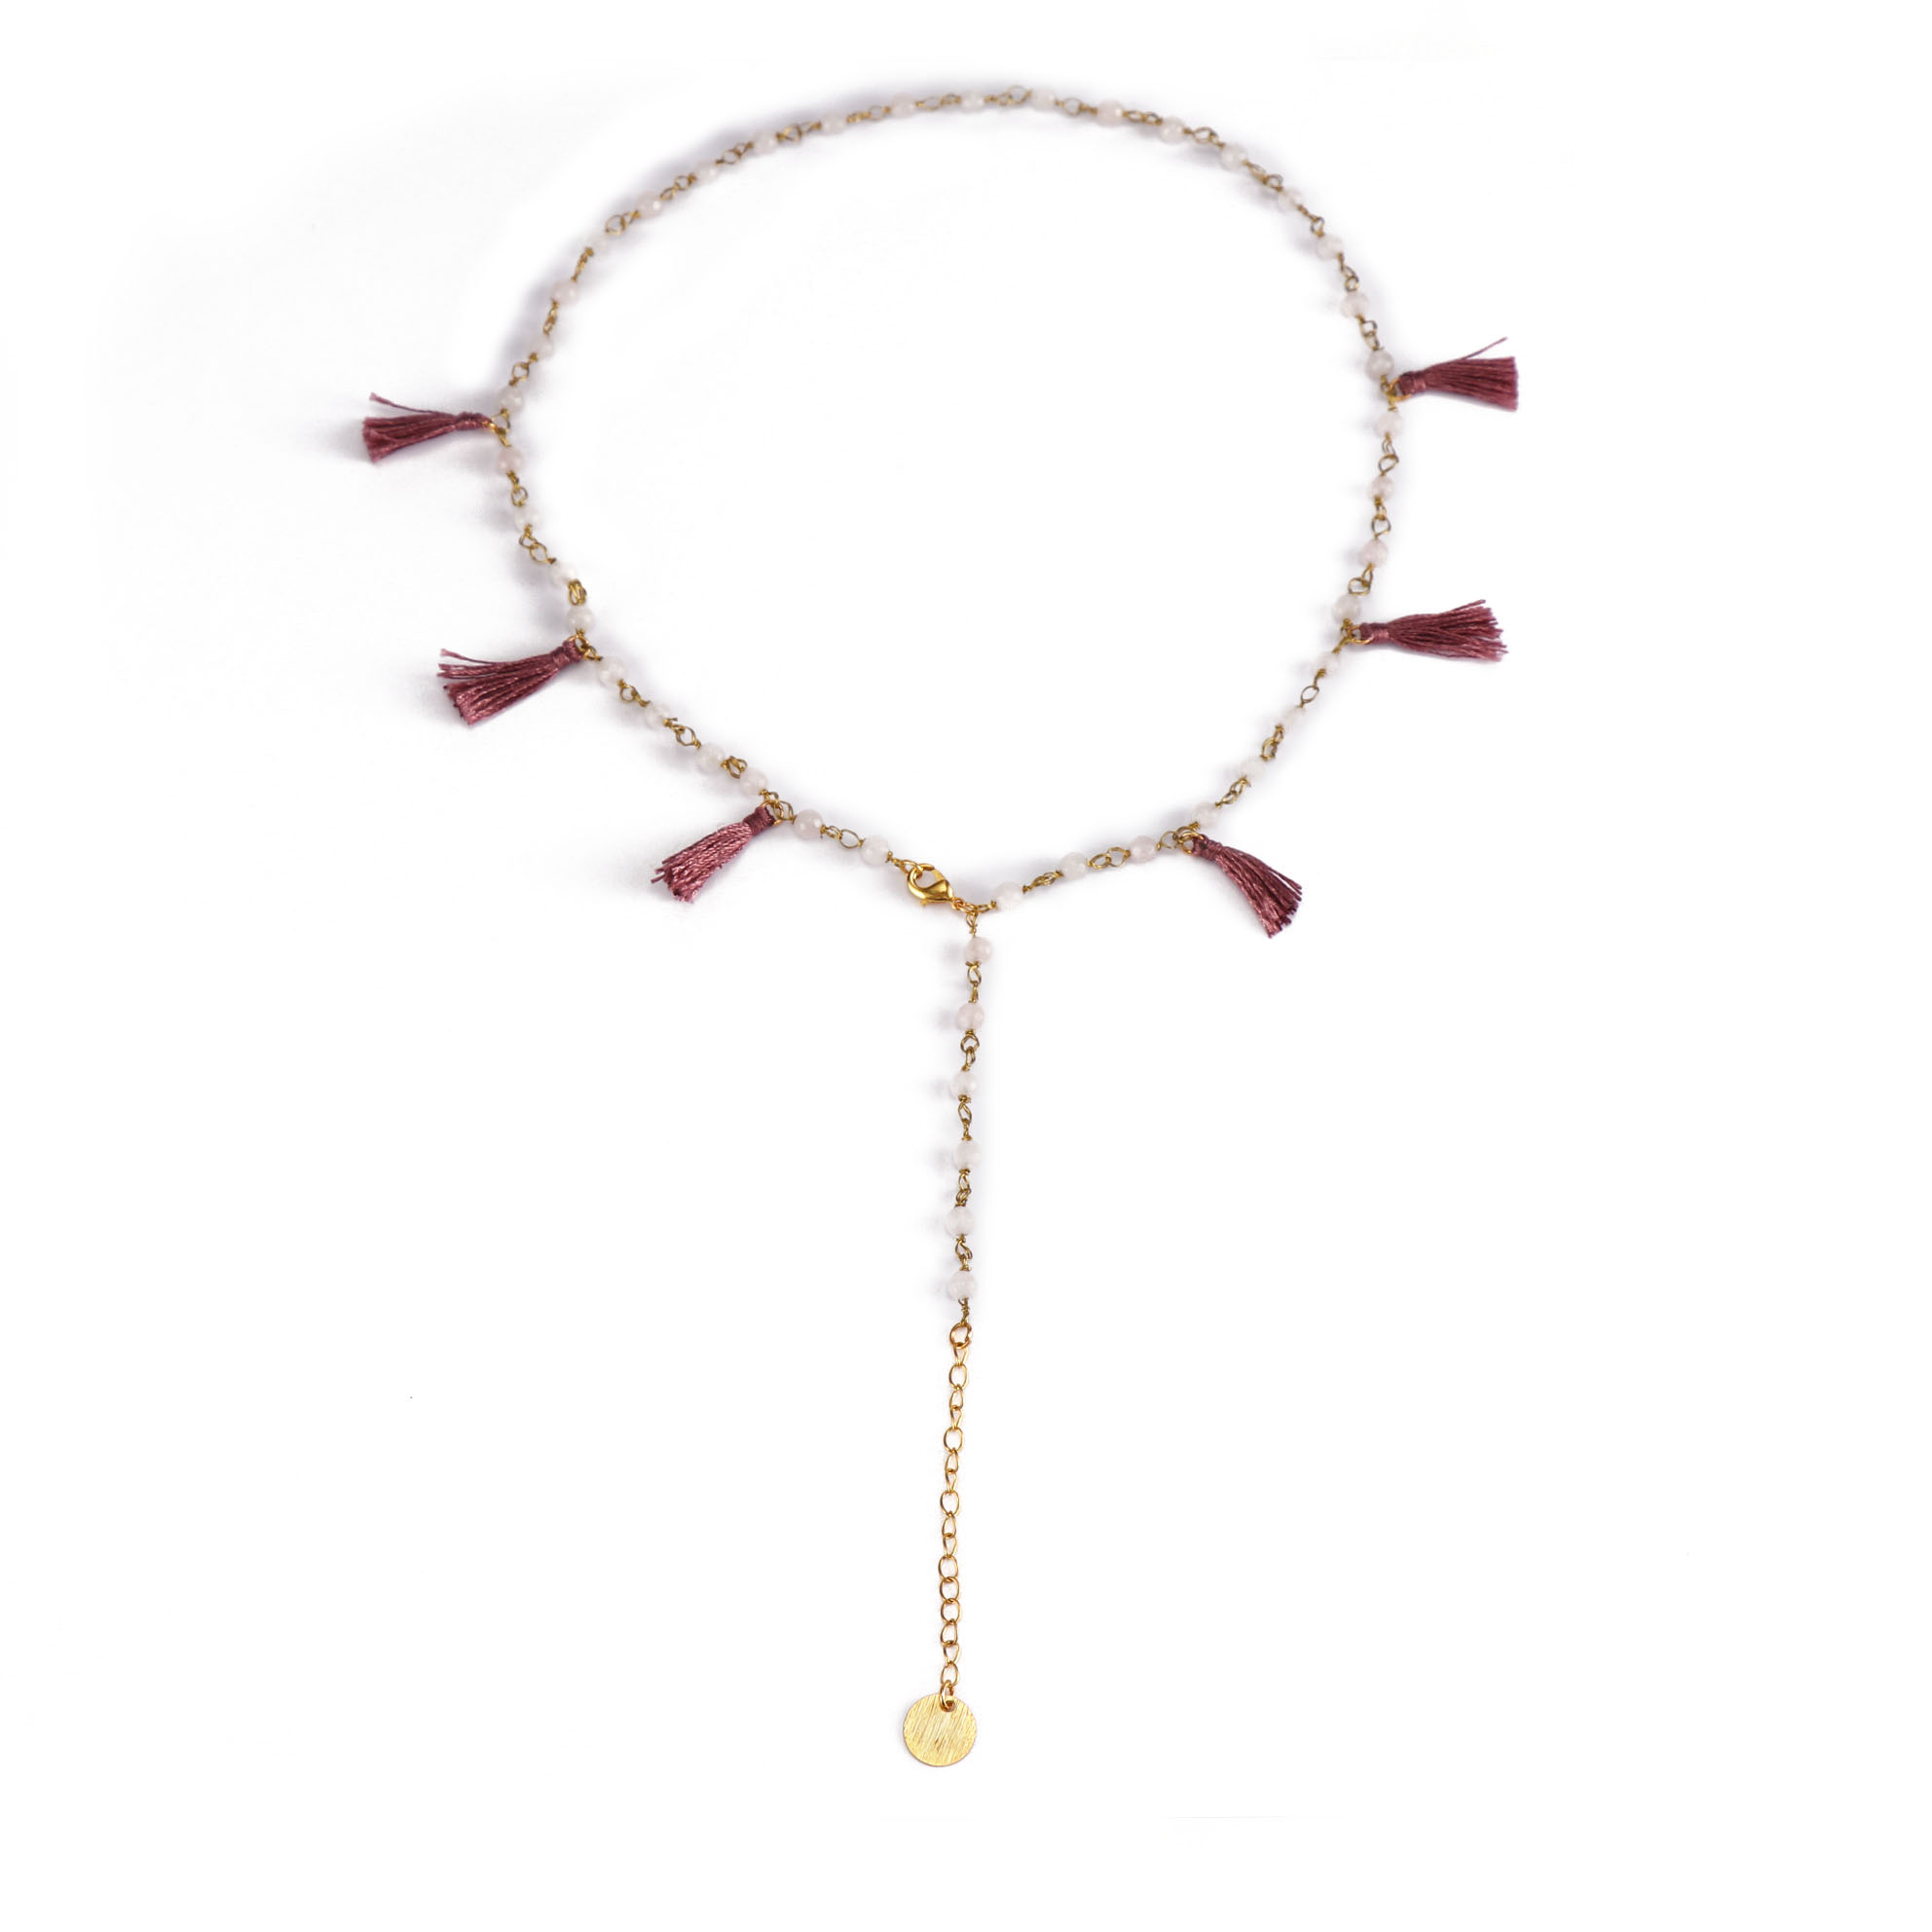 Stylish Wholesale Gold Plated Crystal Beads Necklace With Wine red Color Tassel Women Jewlery